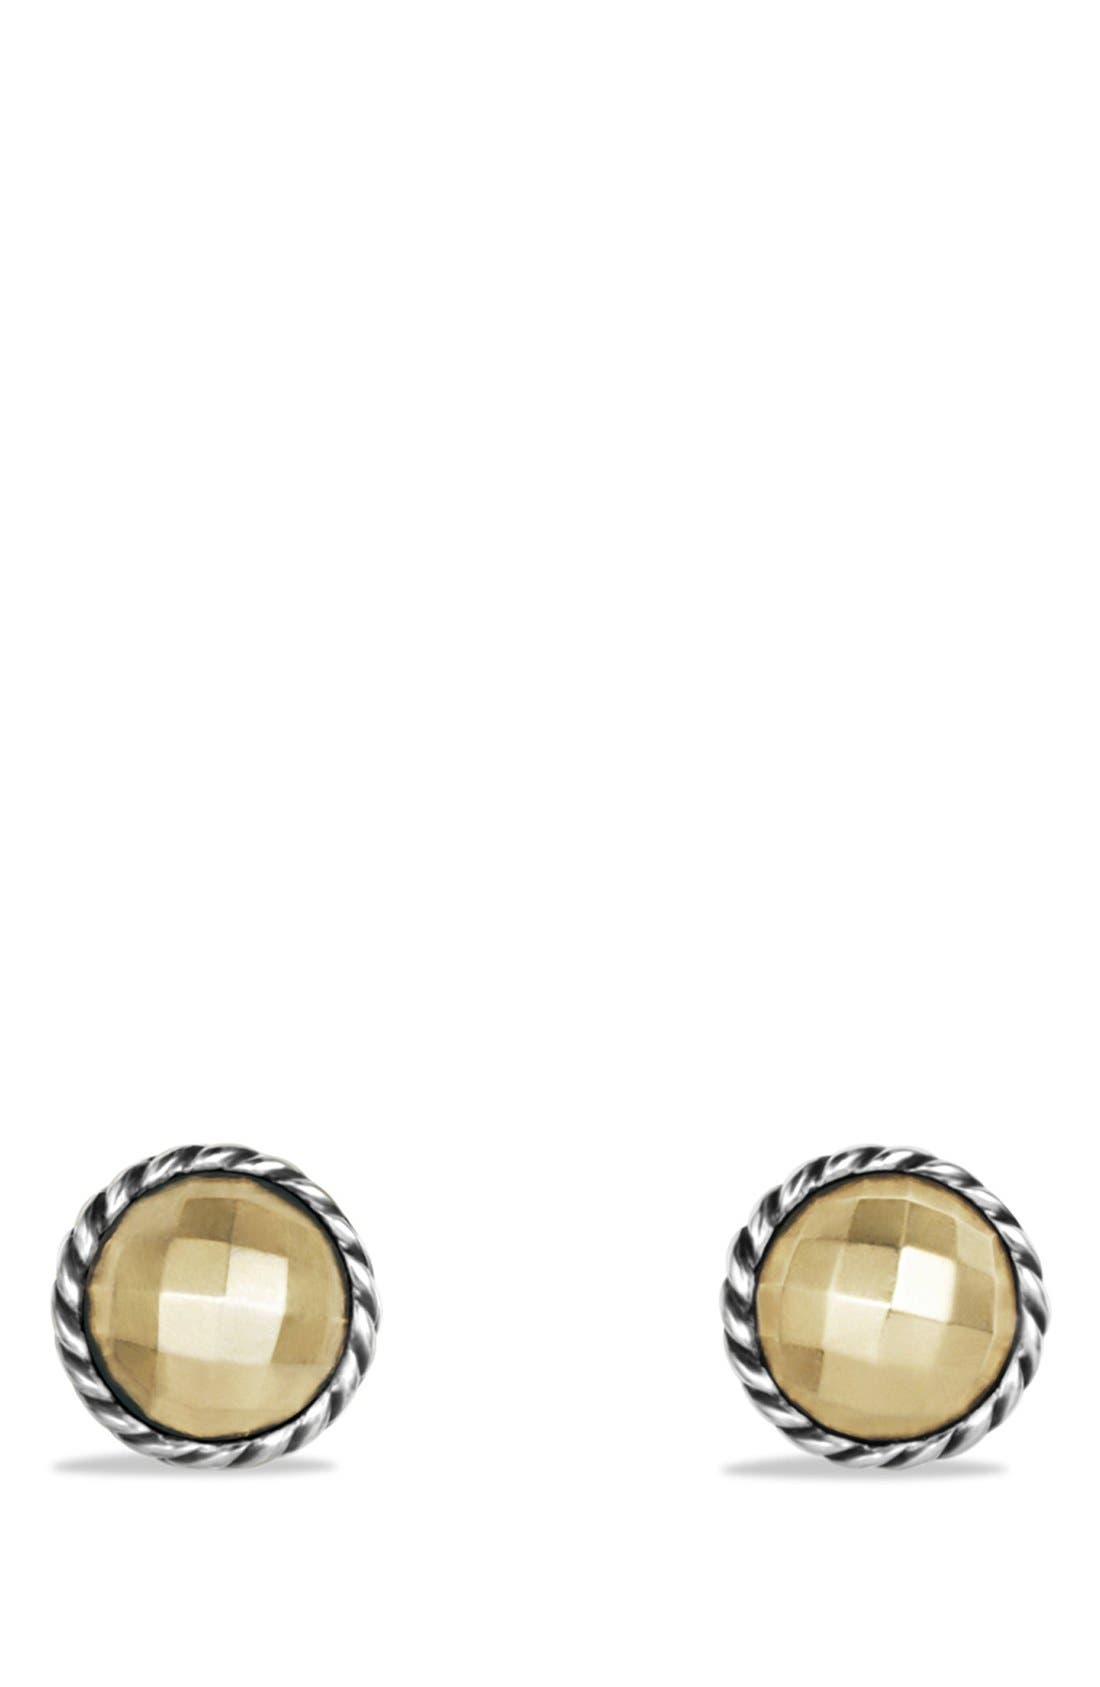 DAVID YURMAN 'Châtelaine' Earrings with Gold, Main, color, GOLD DOME